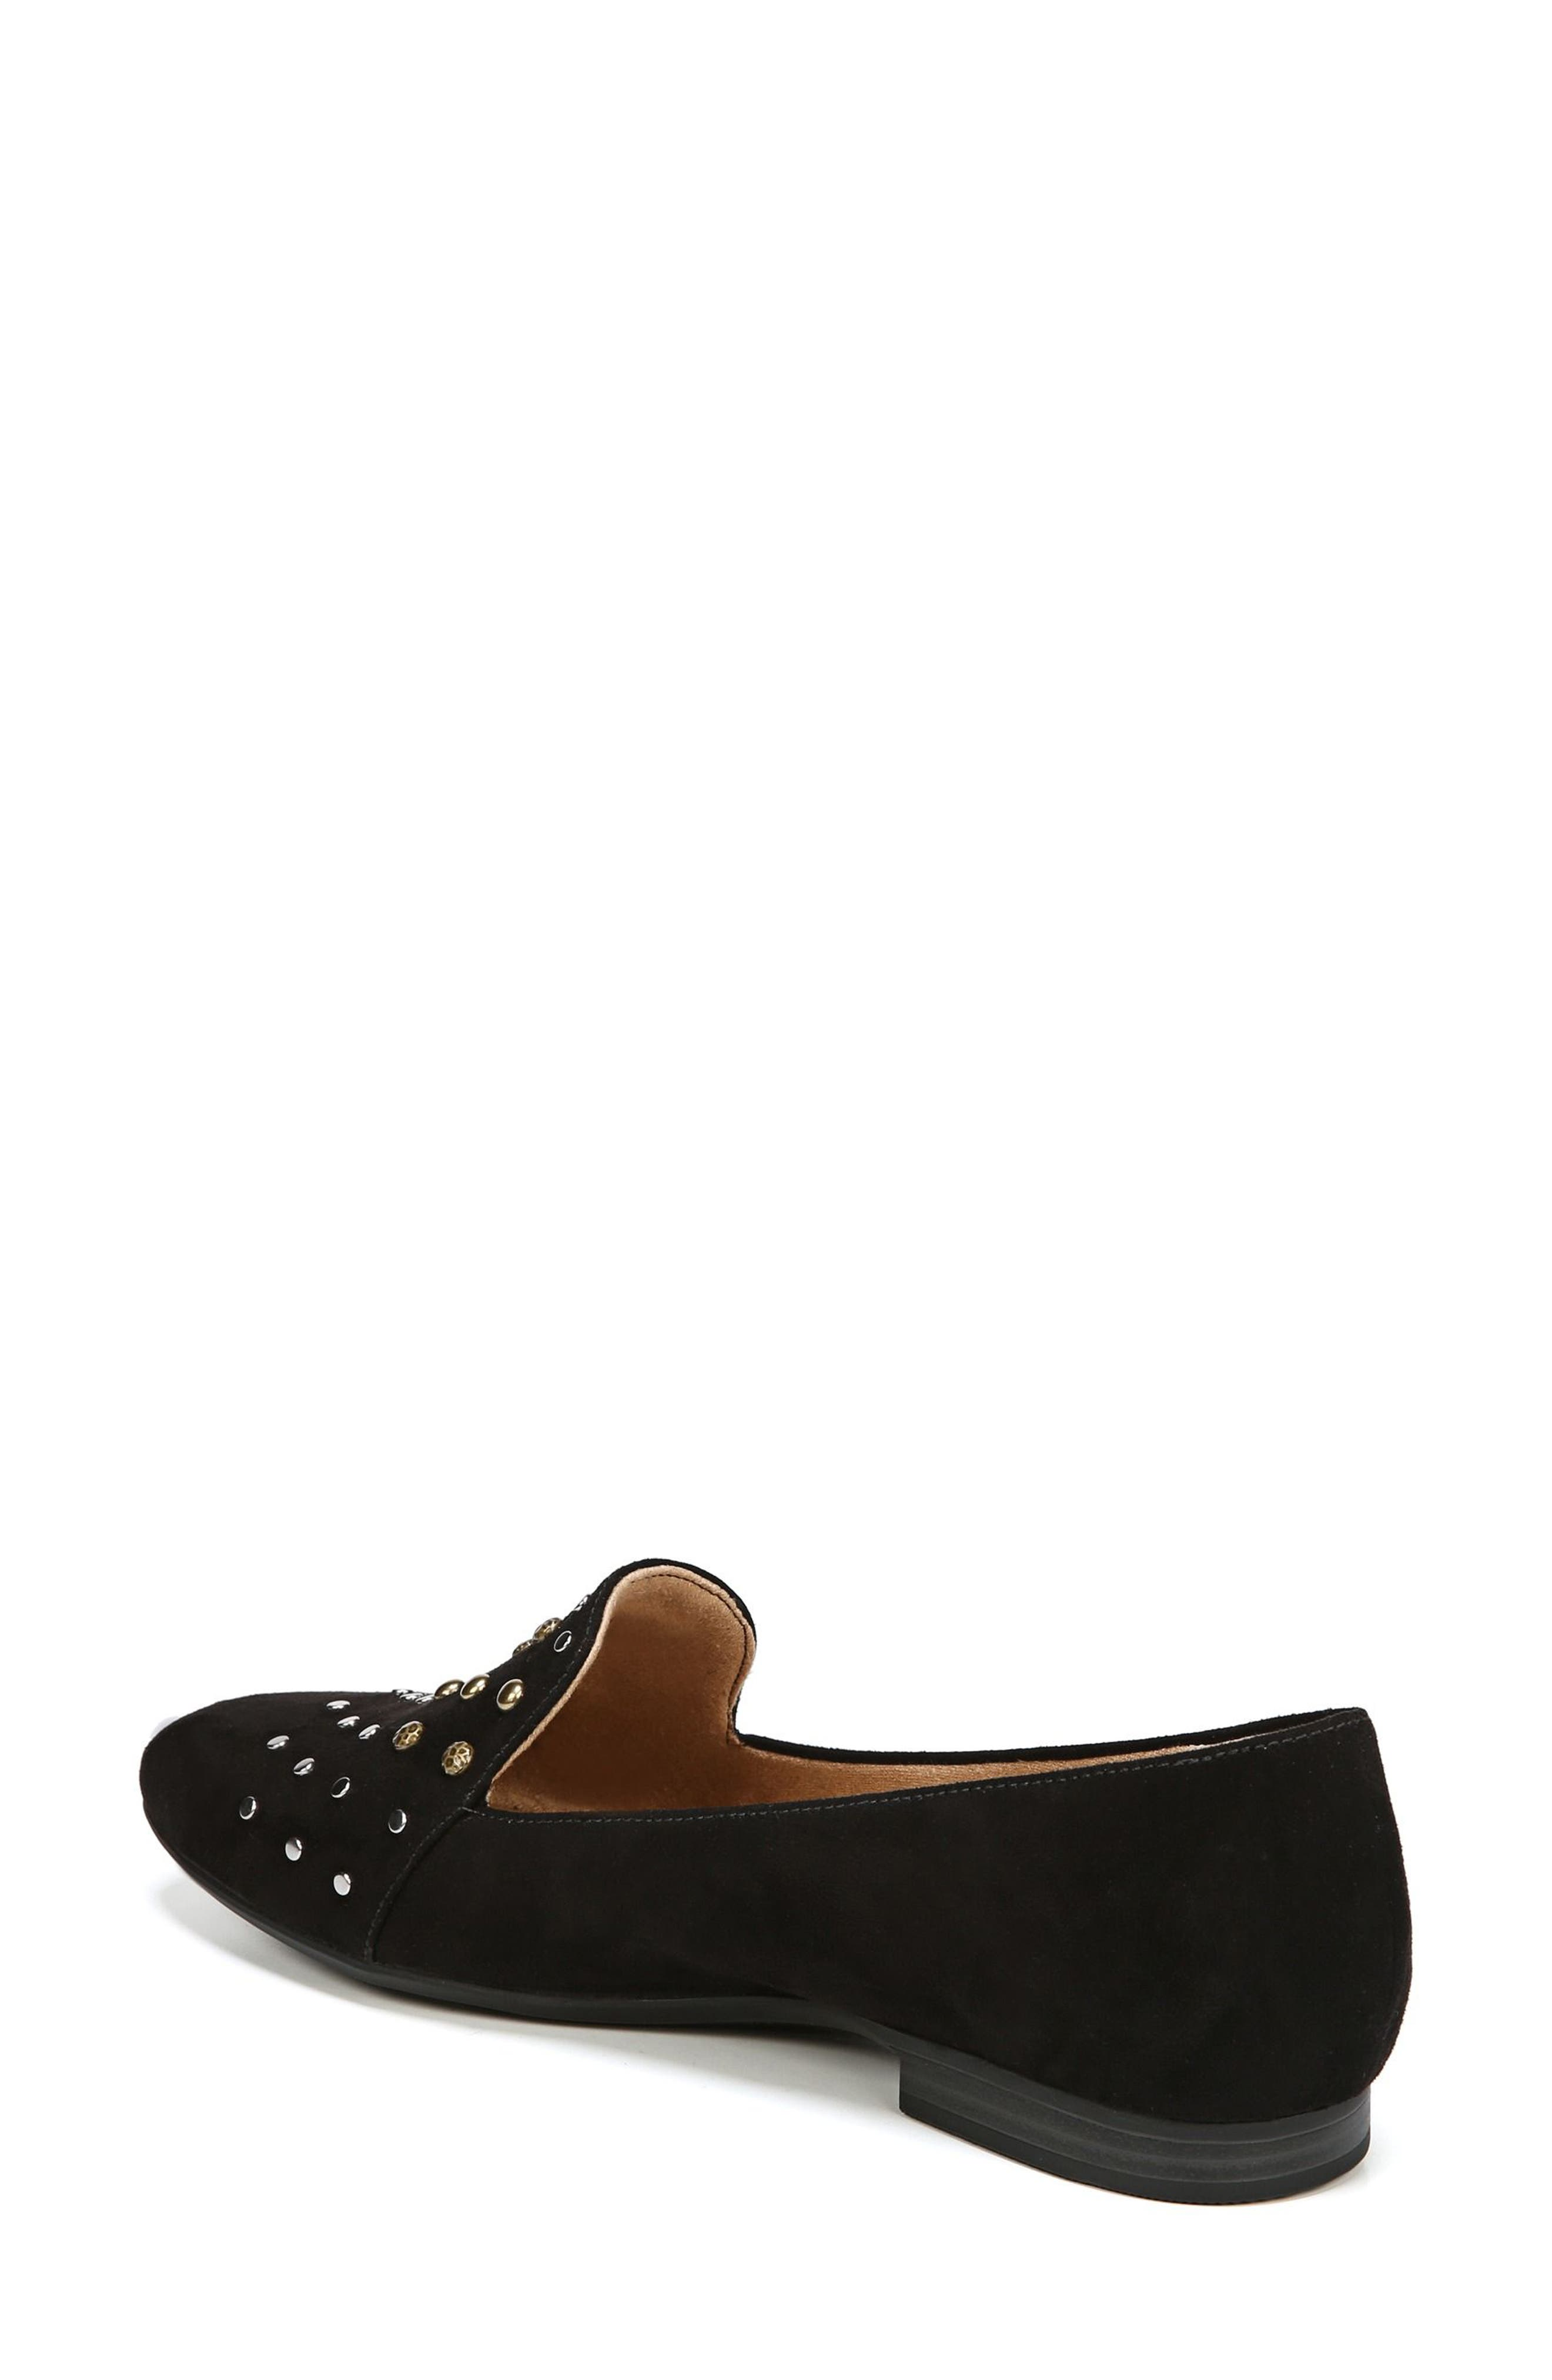 NATURALIZER, Emiline 4 Loafer, Alternate thumbnail 2, color, BLACK FABRIC